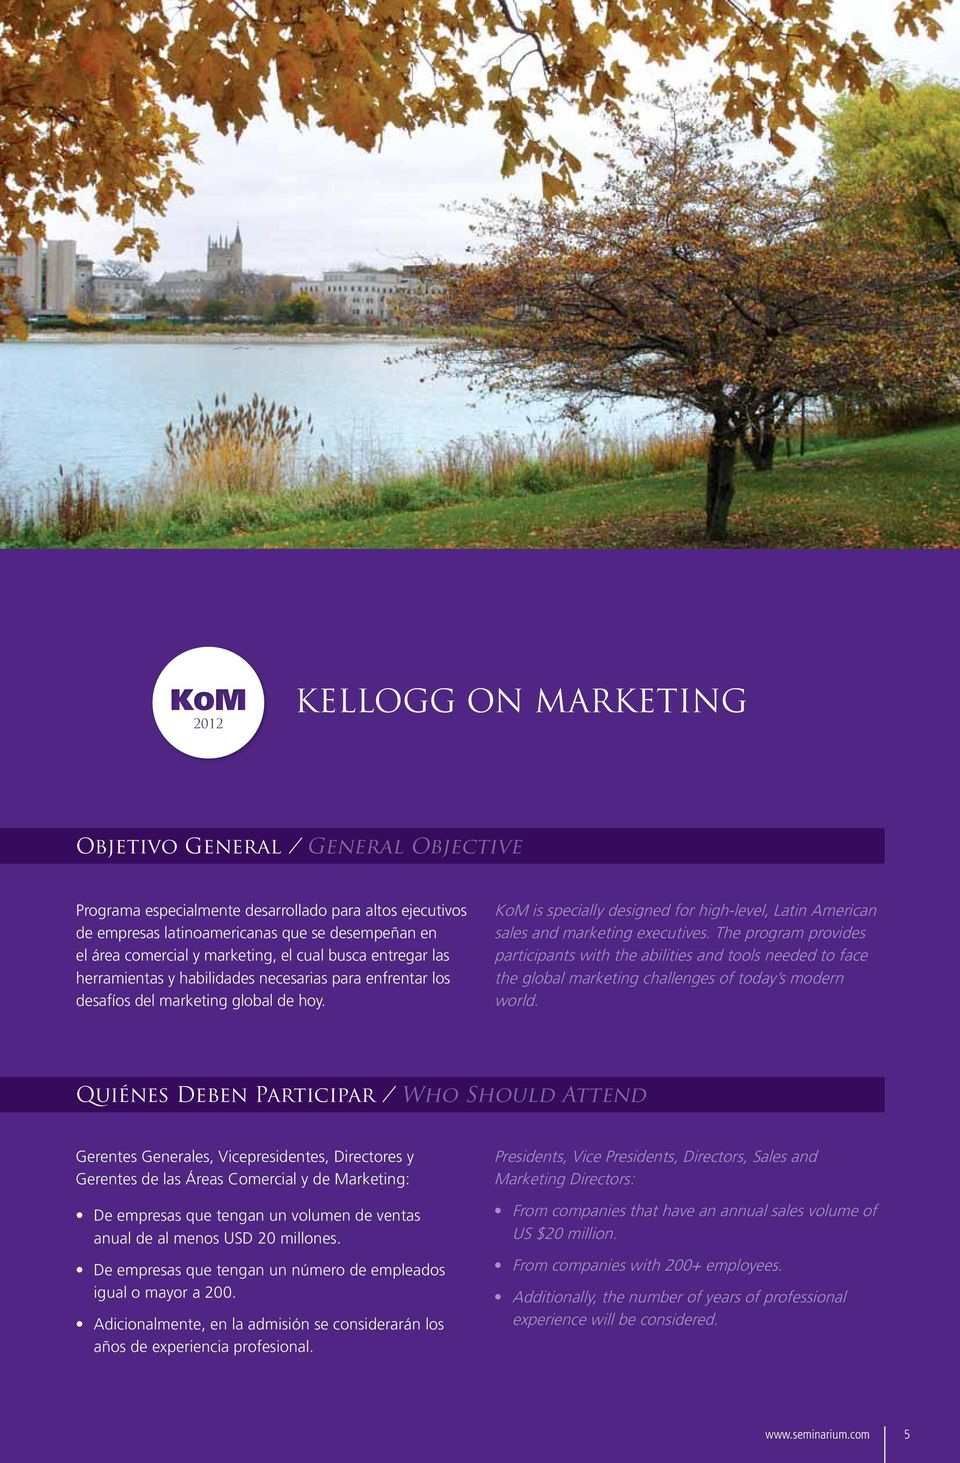 KoM is specially designed for high-level, Latin American sales and marketing executives.